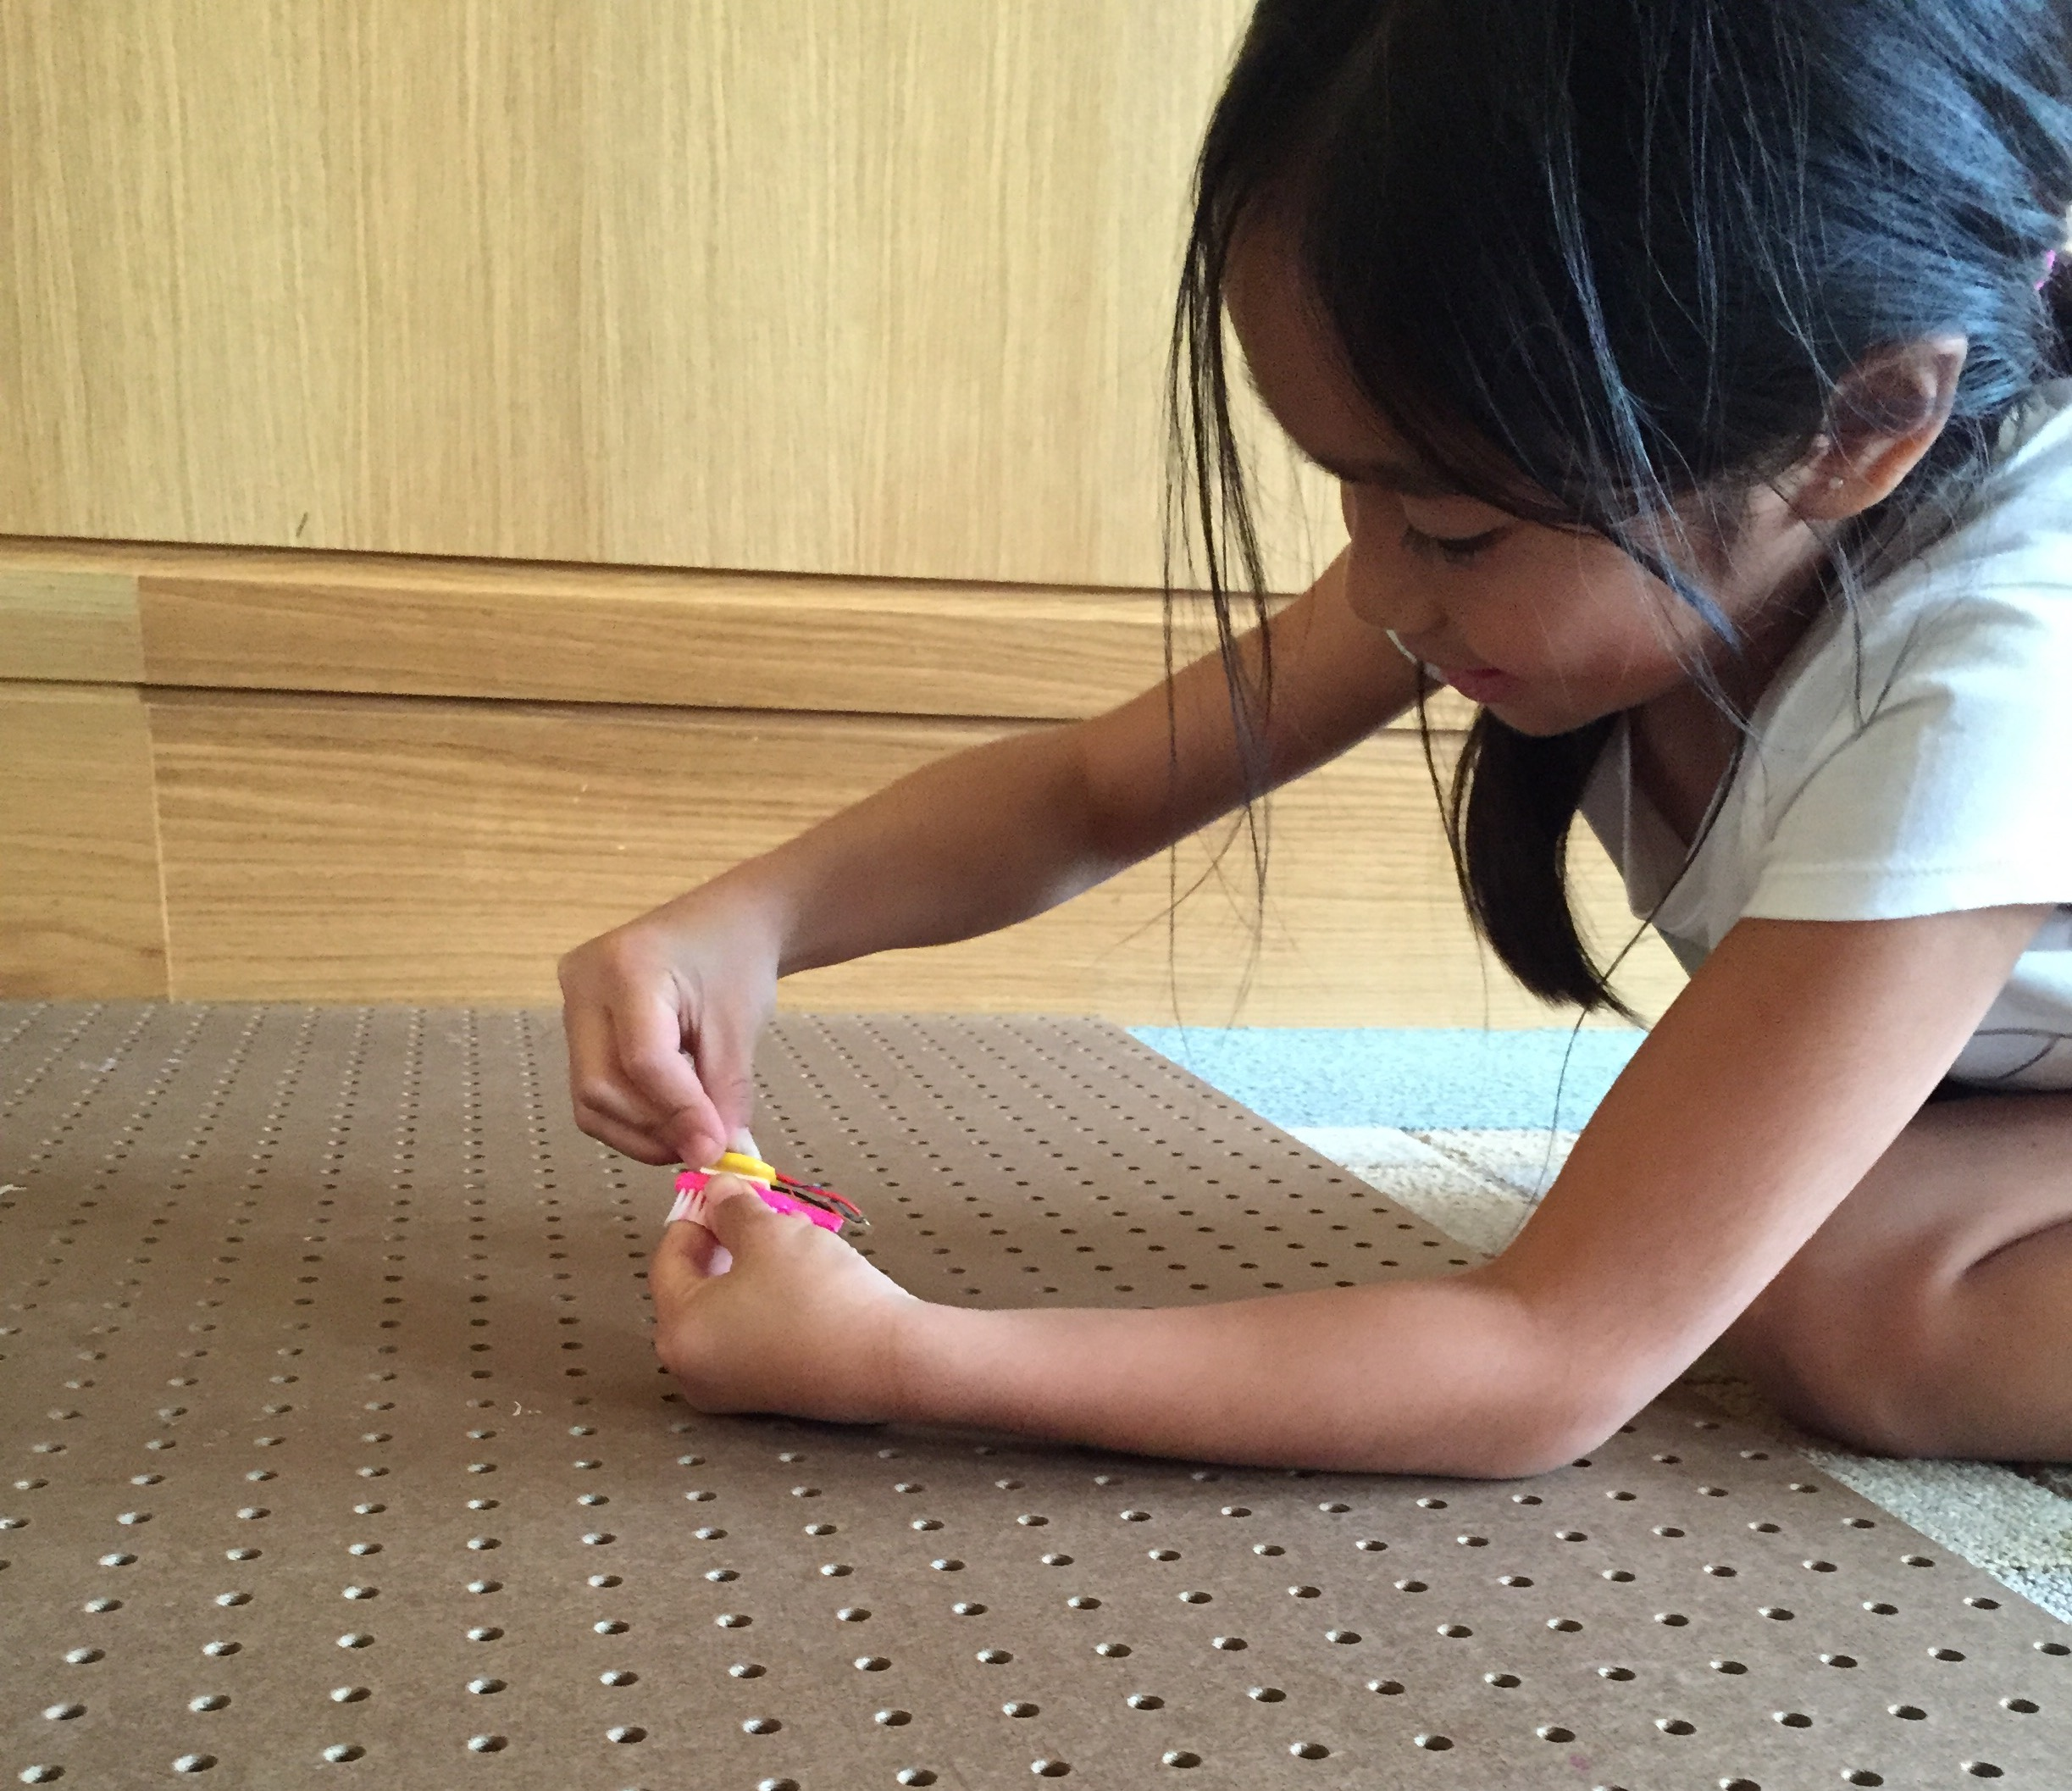 Tiny hands are perfect for assembling Brushbots.